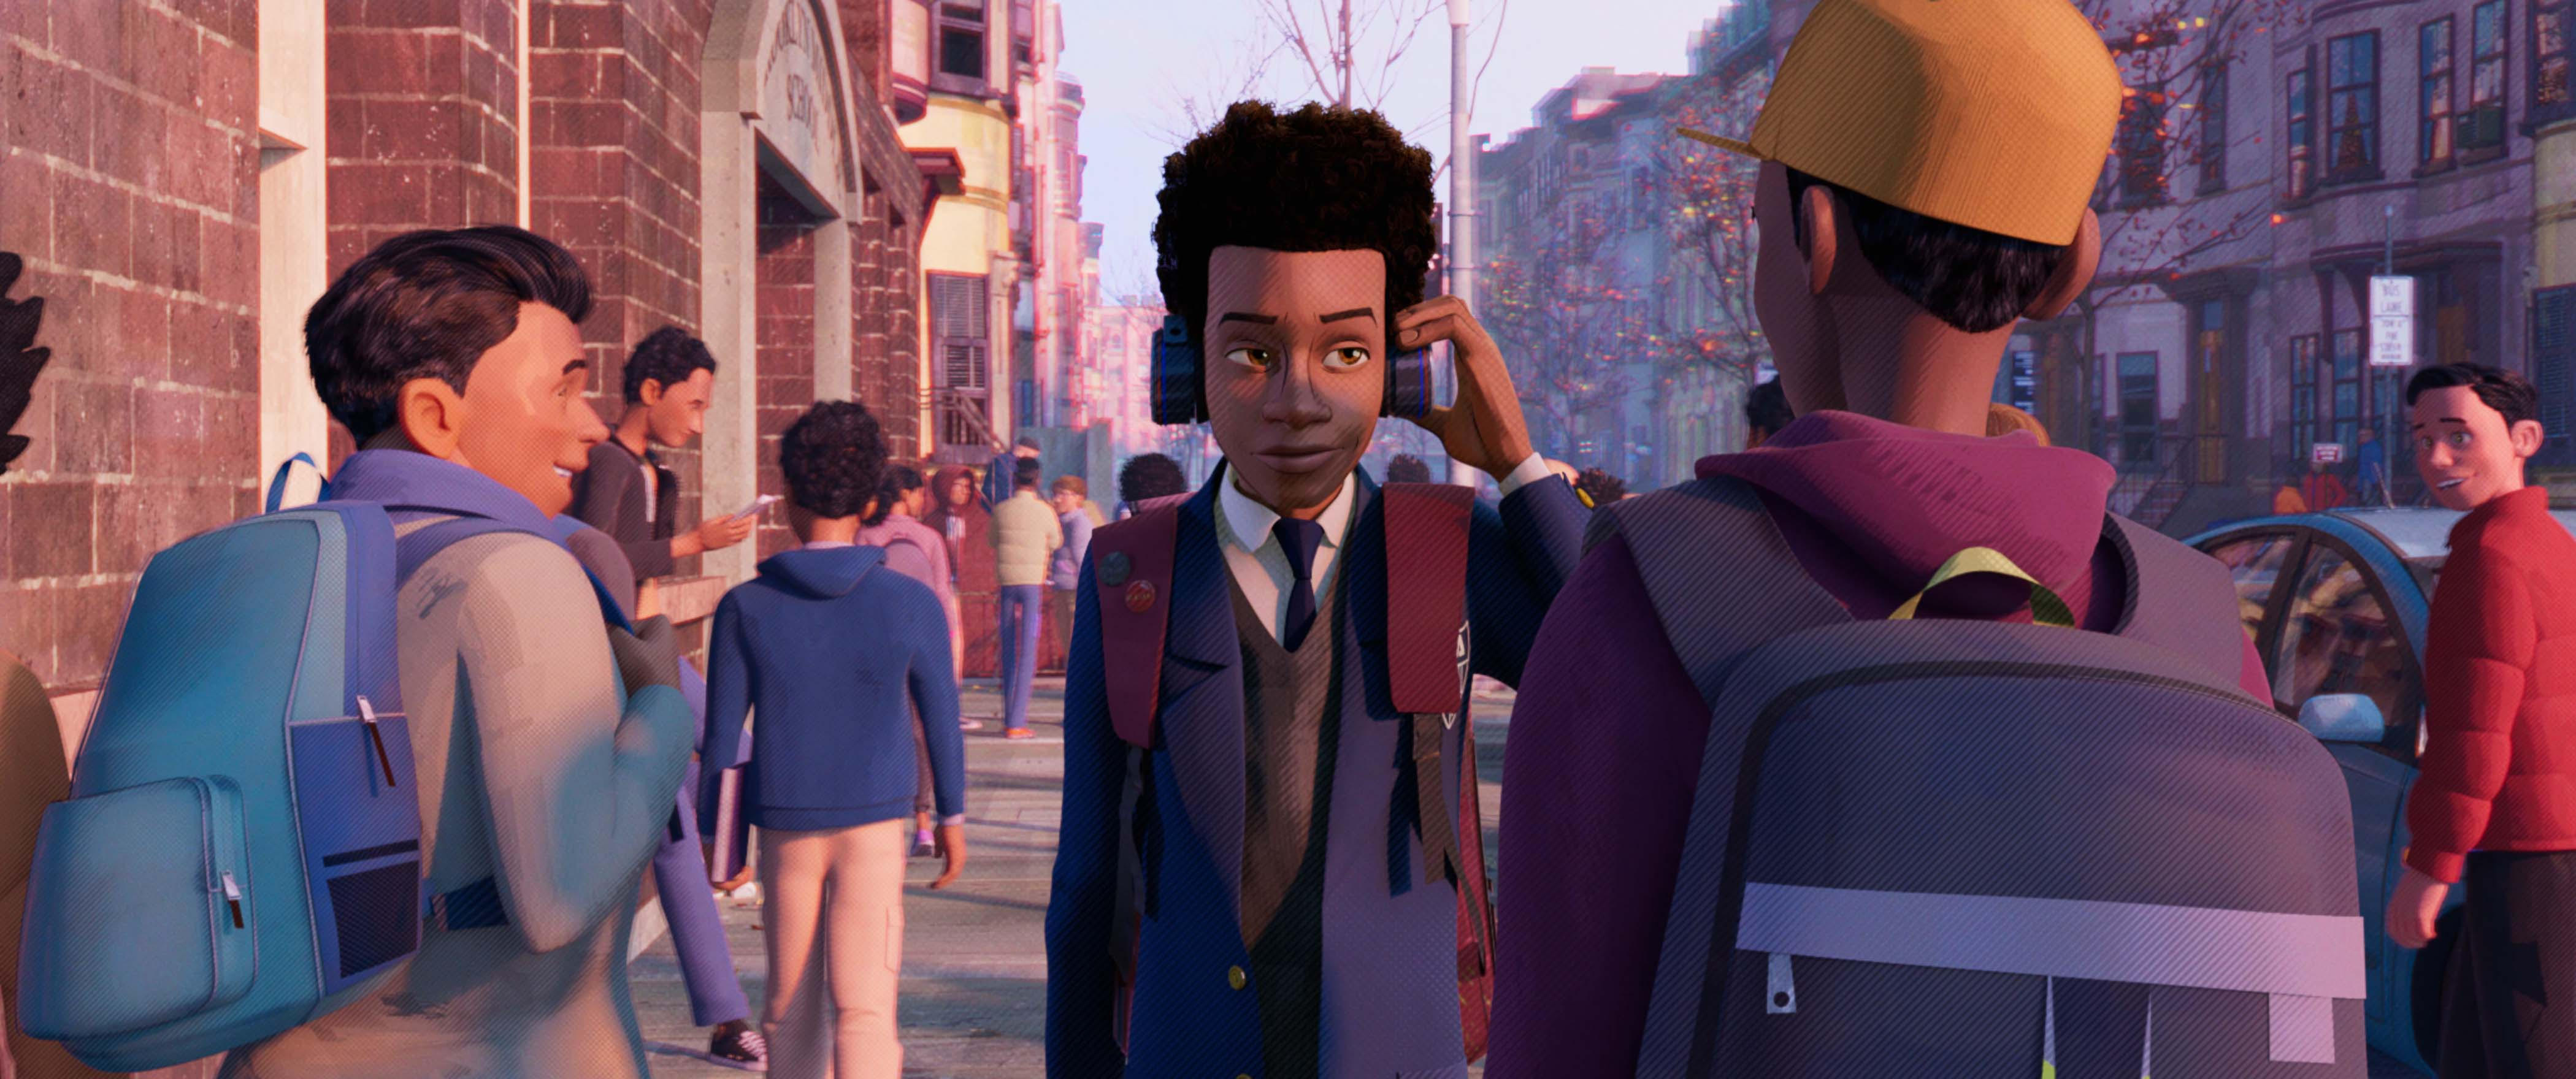 Miles Morales (Shameik Moore) in Columbia Pictures and Sony Pictures Animations' SPIDER-MAN: INTO THE SPIDER-VERSE.